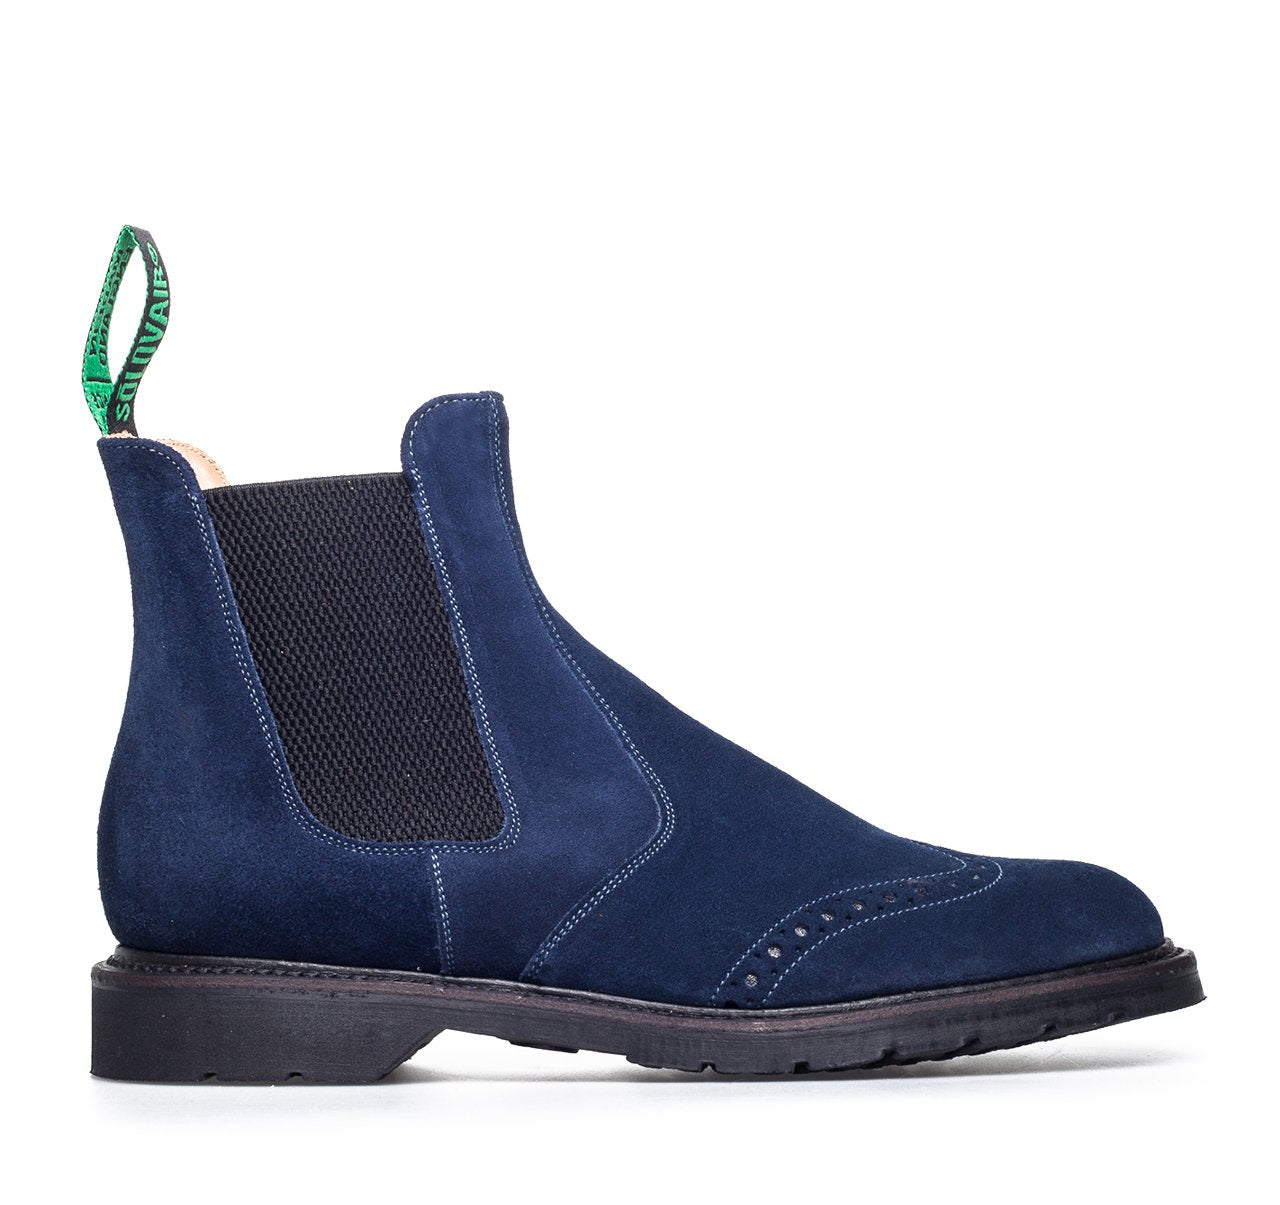 Solovair Dealer Brogue Boots - Navy Suede